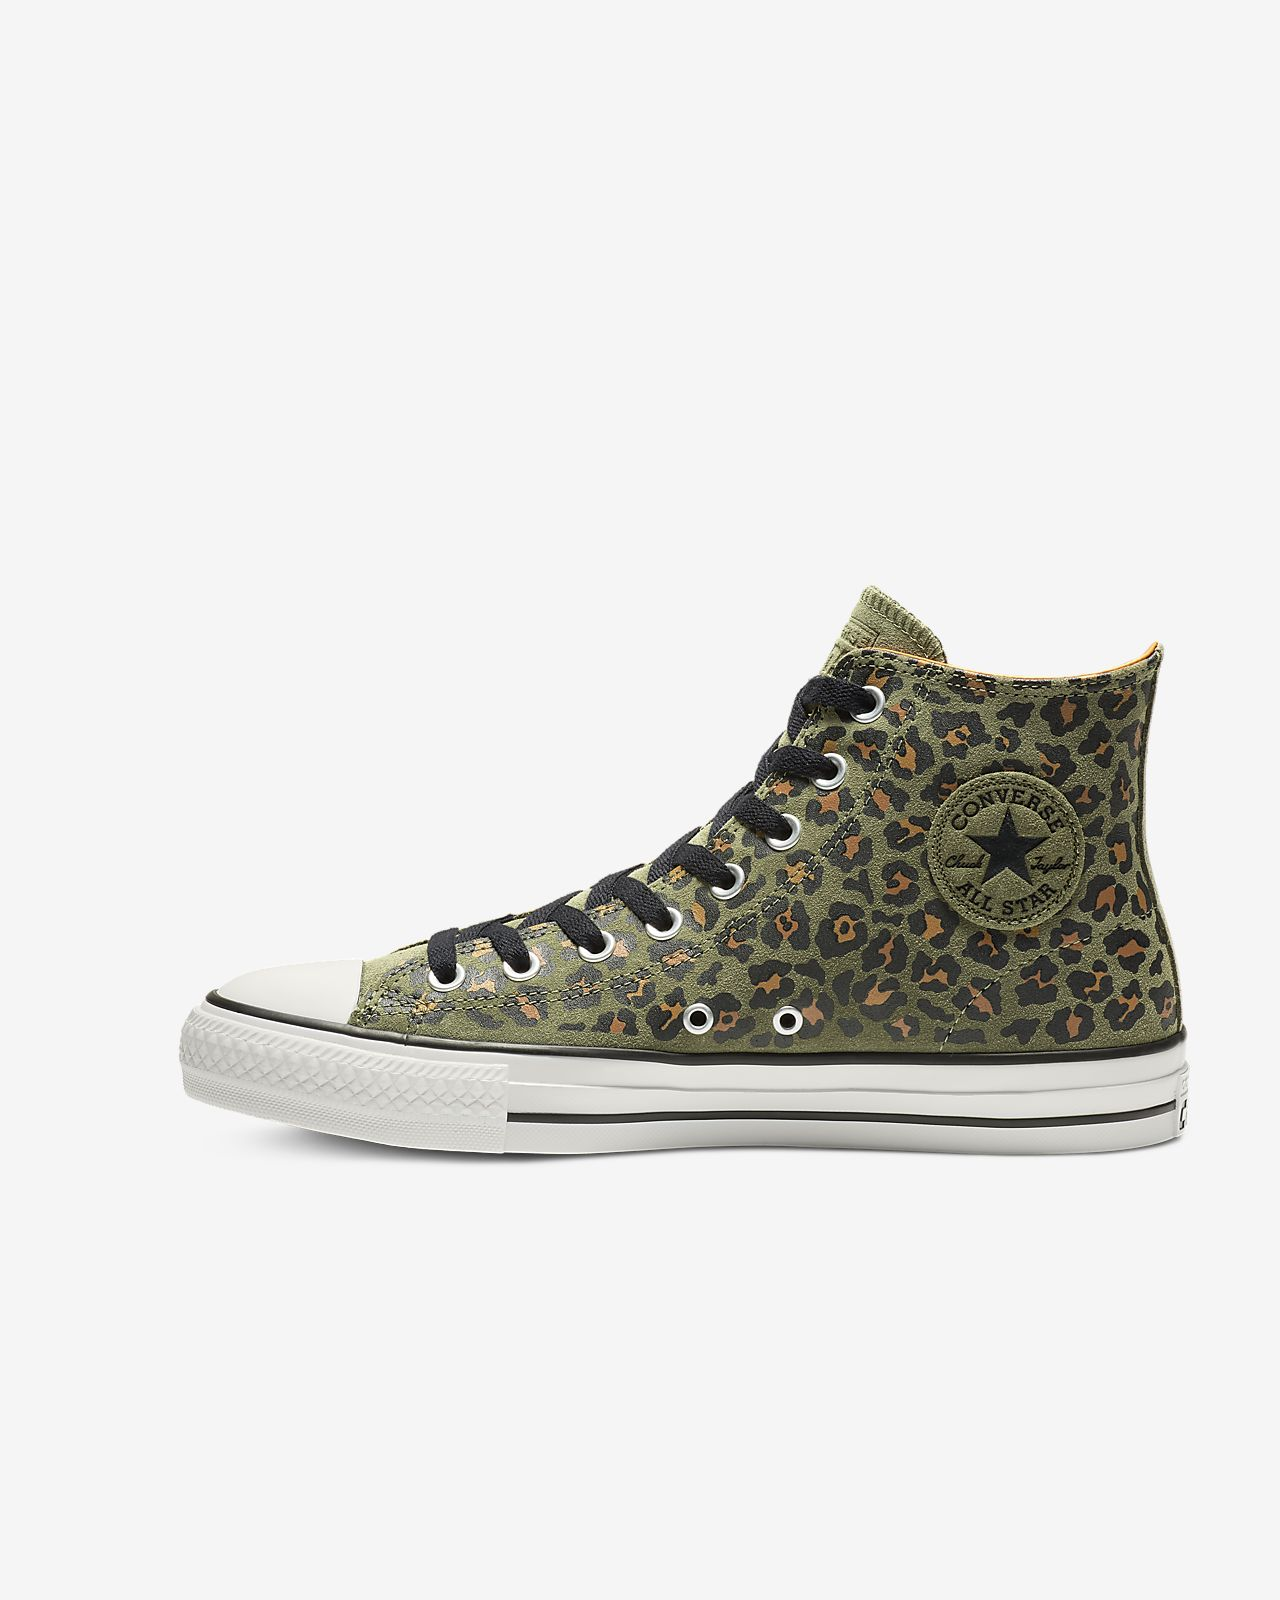 Chuck Taylor All Star Pro High Top Unisex Shoe